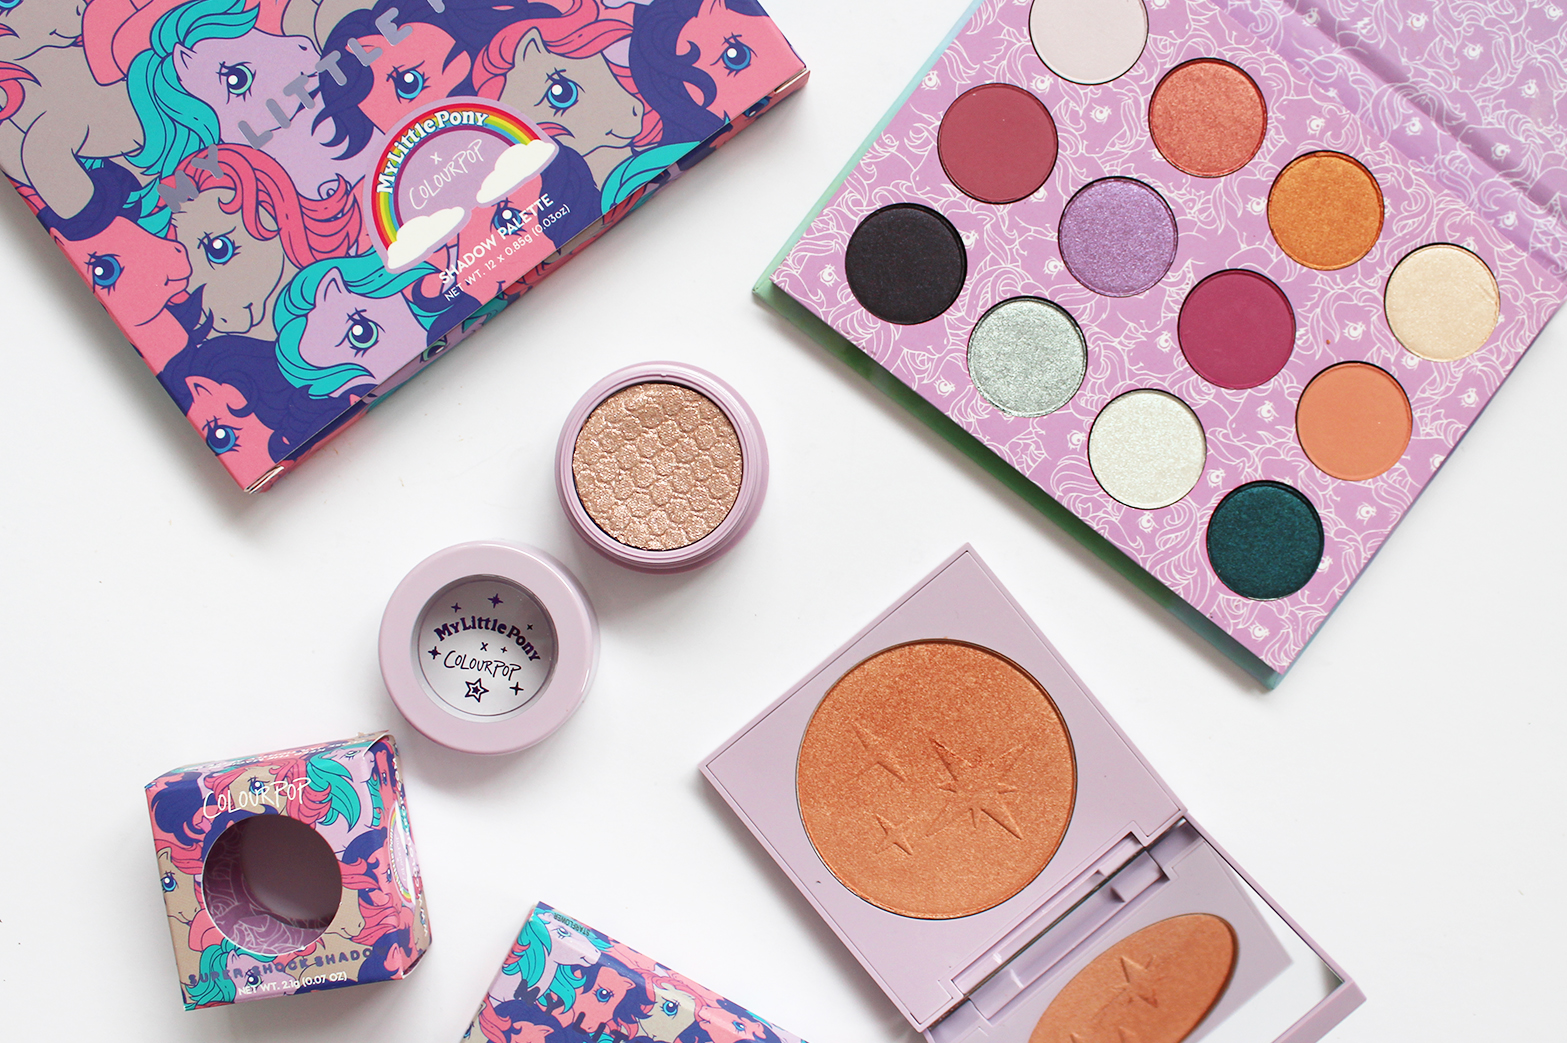 COLOURPOP | Haul - New Fall Eyeshadows, Palettes + My Little Pony Collection - CassandraMyee